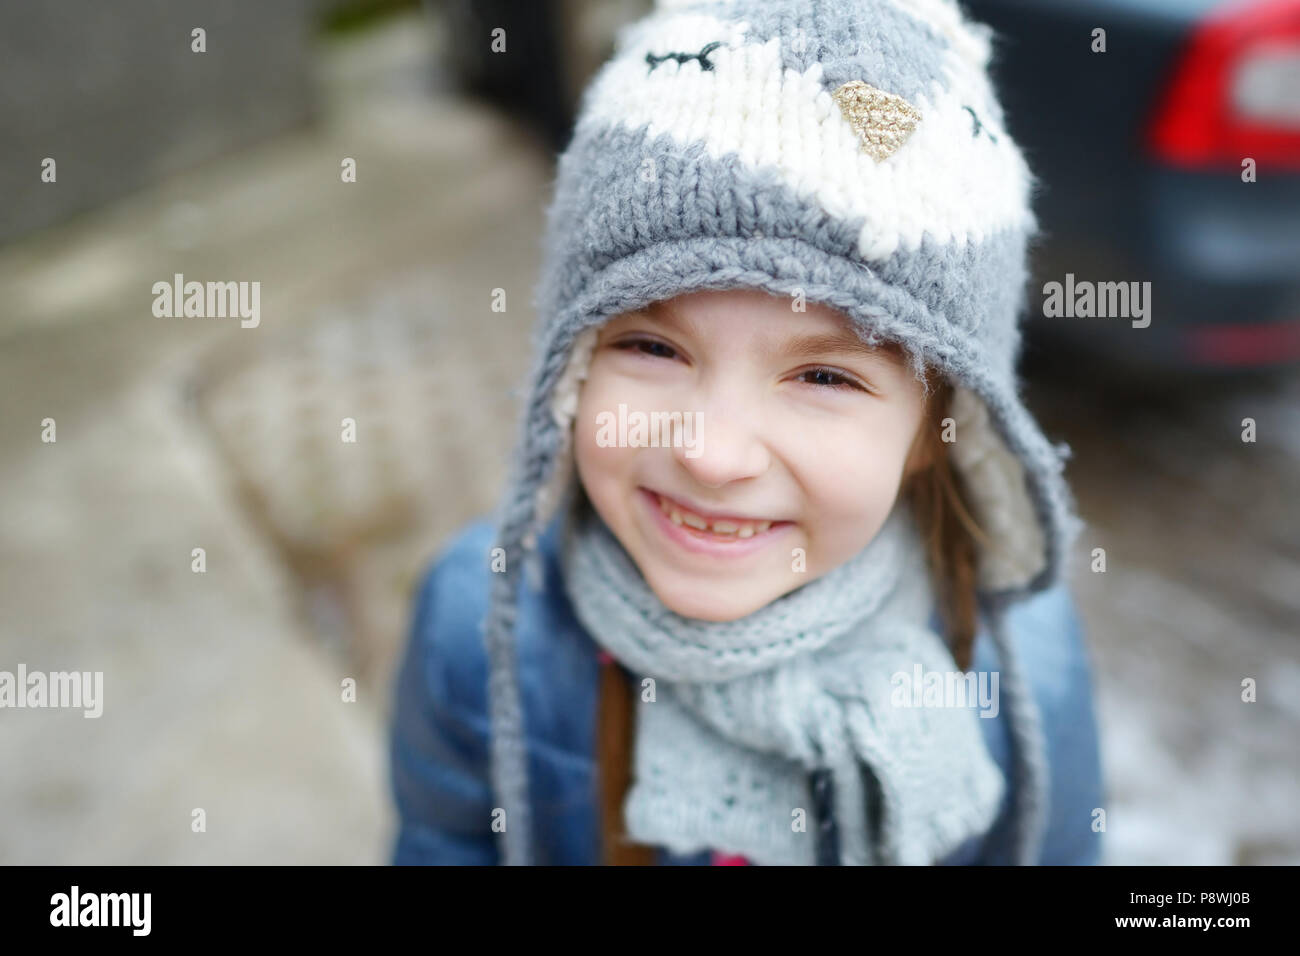 36b285286 Adorable little girl wearing winter hat making funny faces on ...